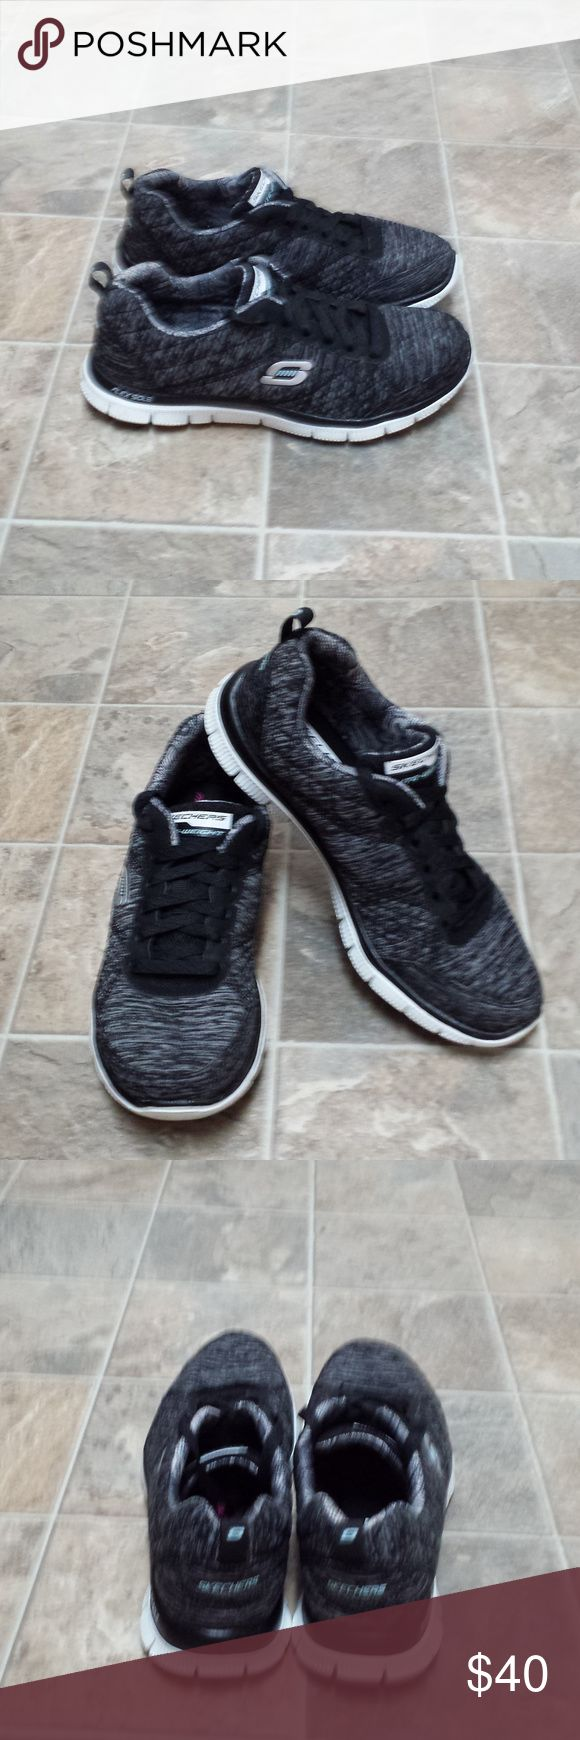 Skechers Flex Sole Memory Foam Athletic Shoes 8 Skechers Flex Sole Memory Foam Athletic Shoes Womens Size 8 Medium Width. In Great Pre-owned Condition. Only been gently worn just a few times. Very Comfortable and Nice Shoes. Check out my other listings. Skechers Shoes Athletic Shoes